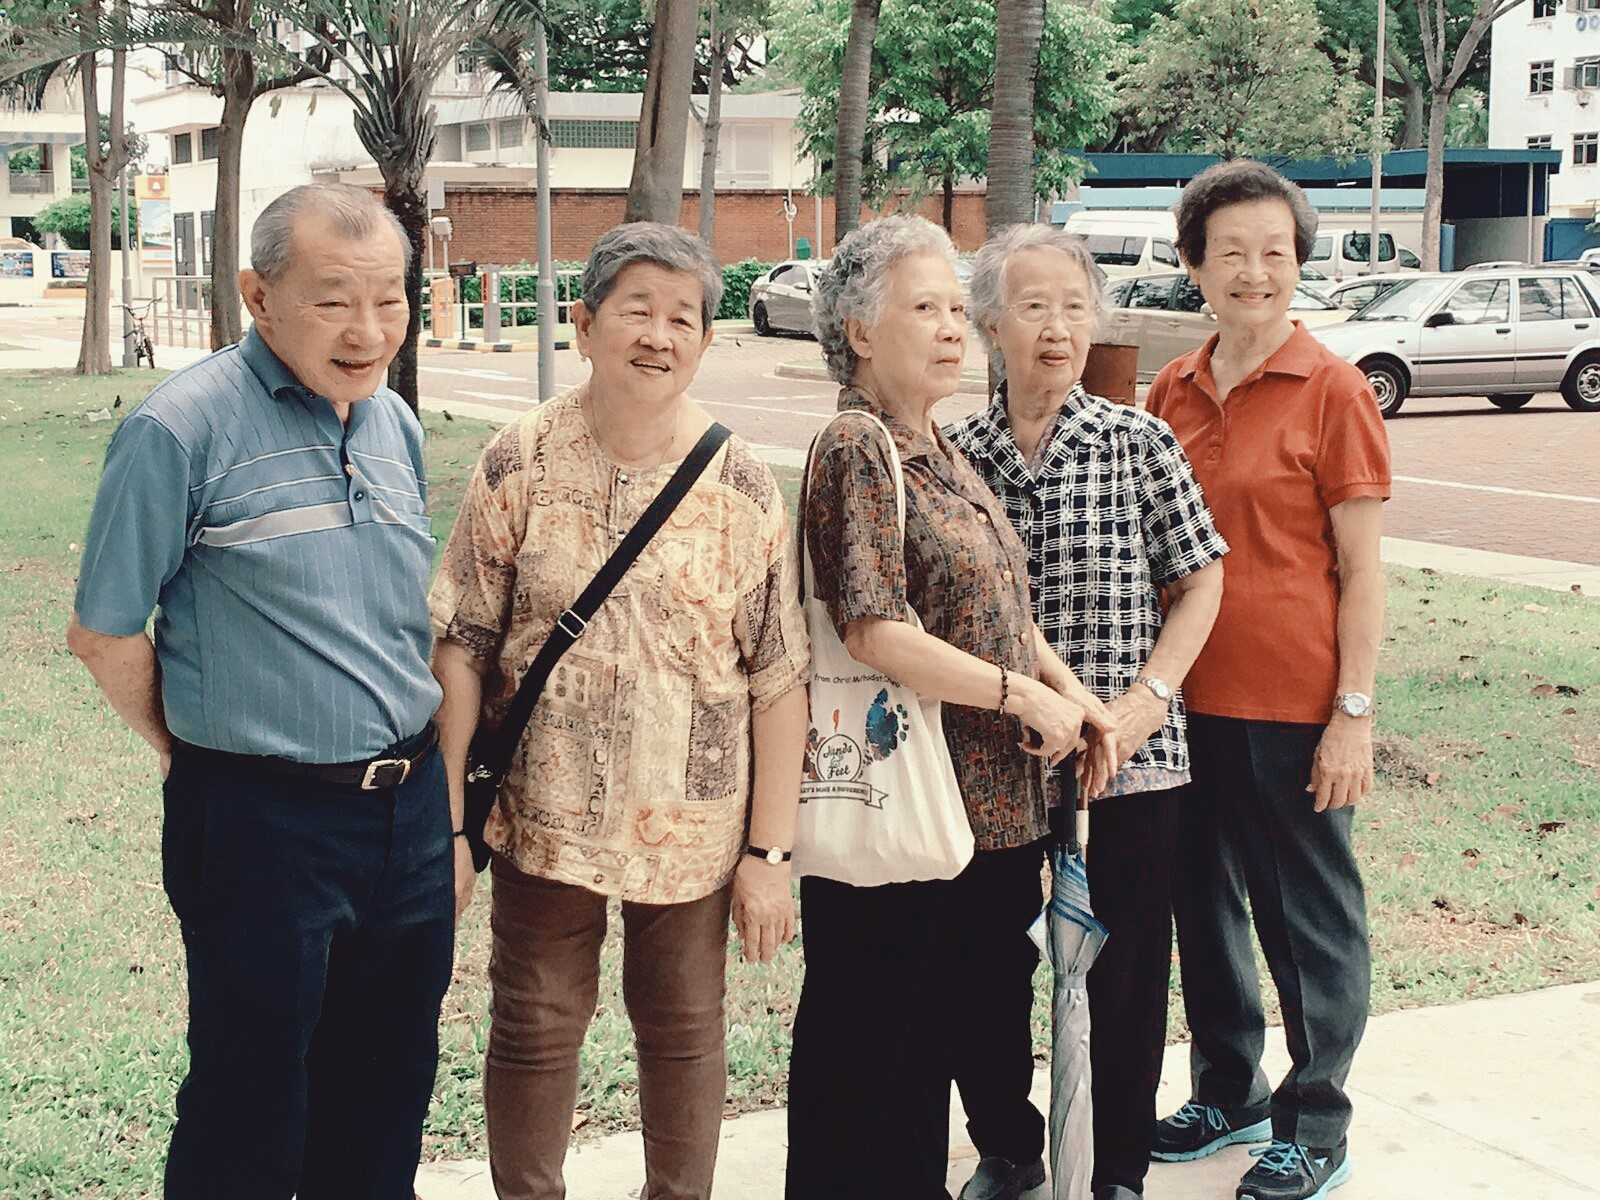 Senior citizen social groups